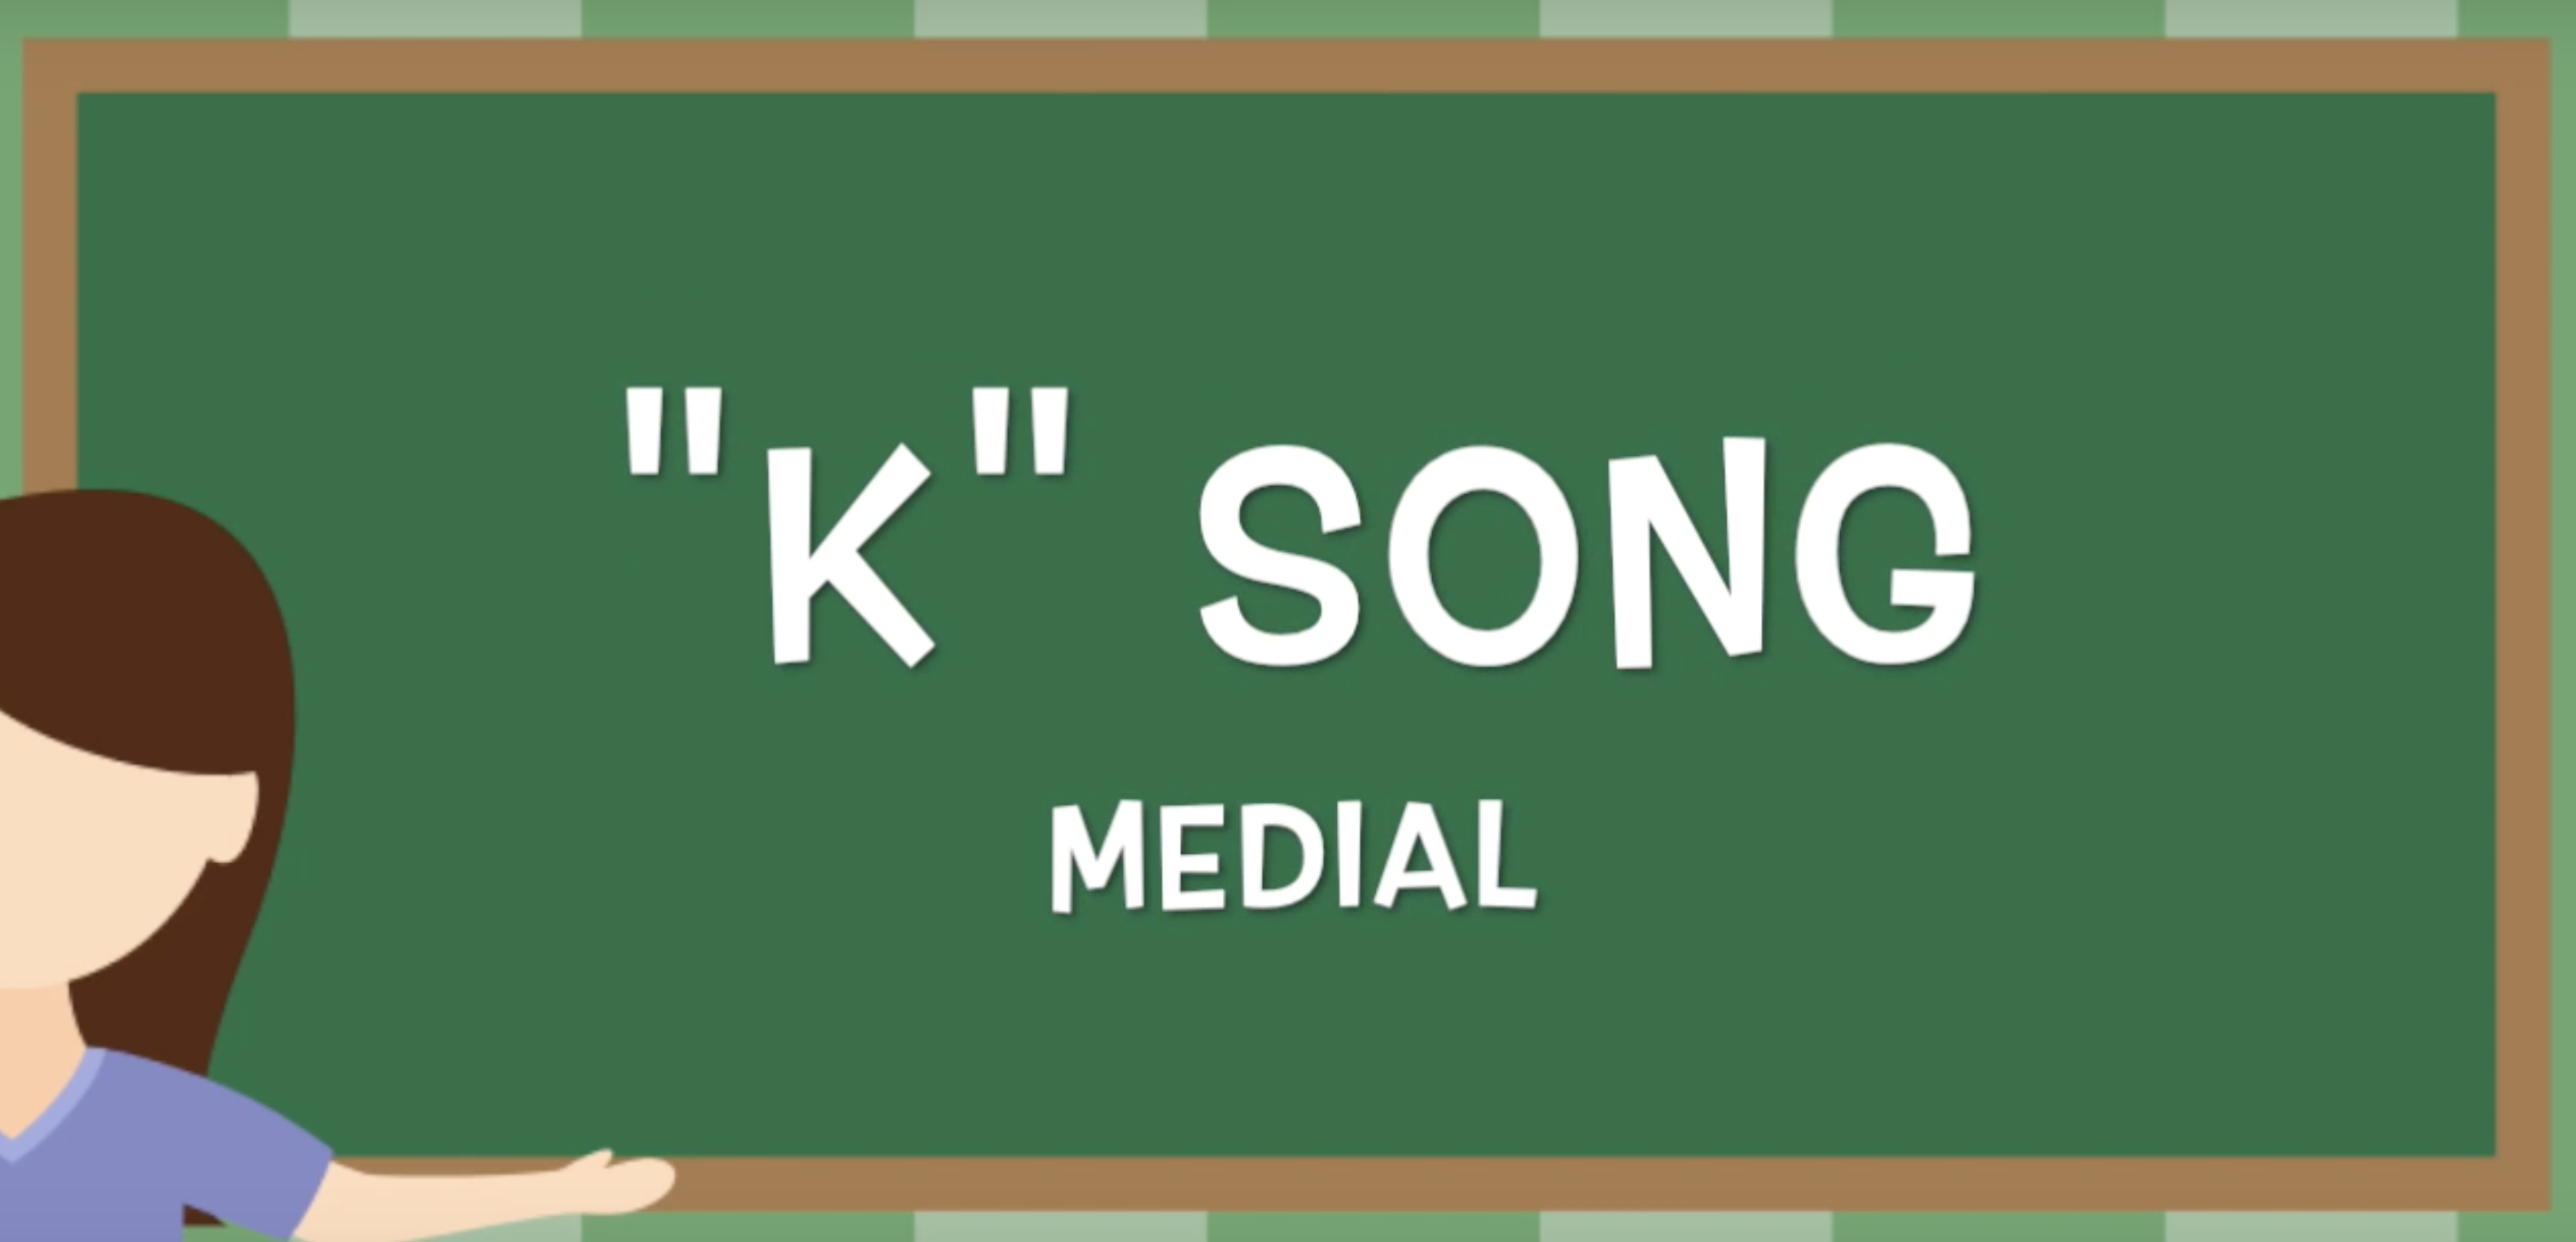 This Is A Speech And Language Song That Targets K In The